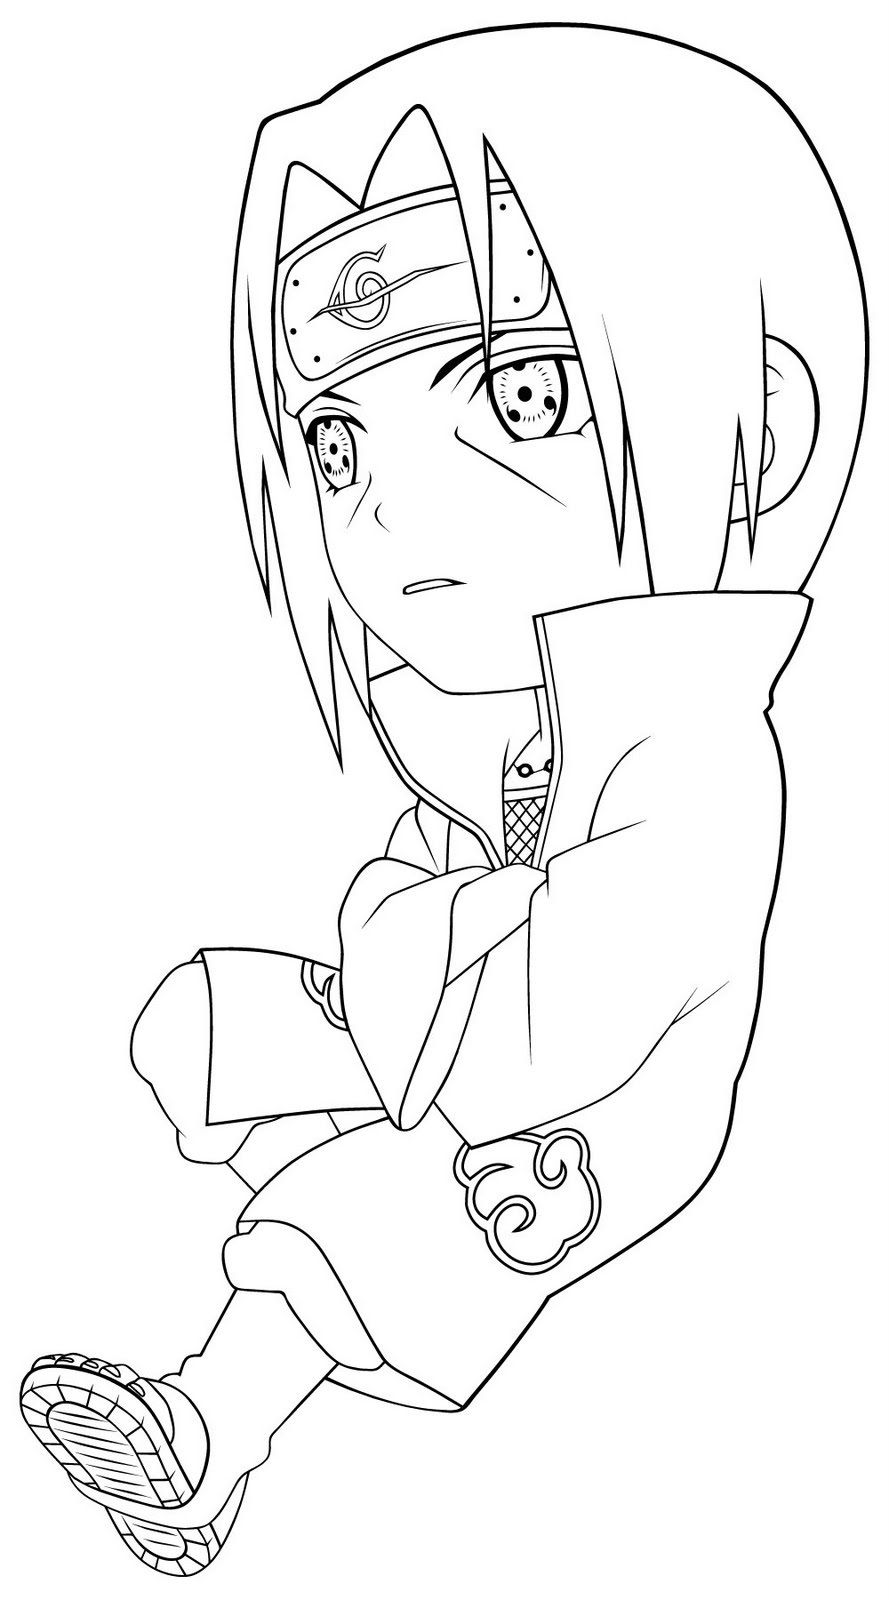 cute naruto coloring pages pin by 先生 李 on background naruto sketch cartoon coloring pages naruto cute